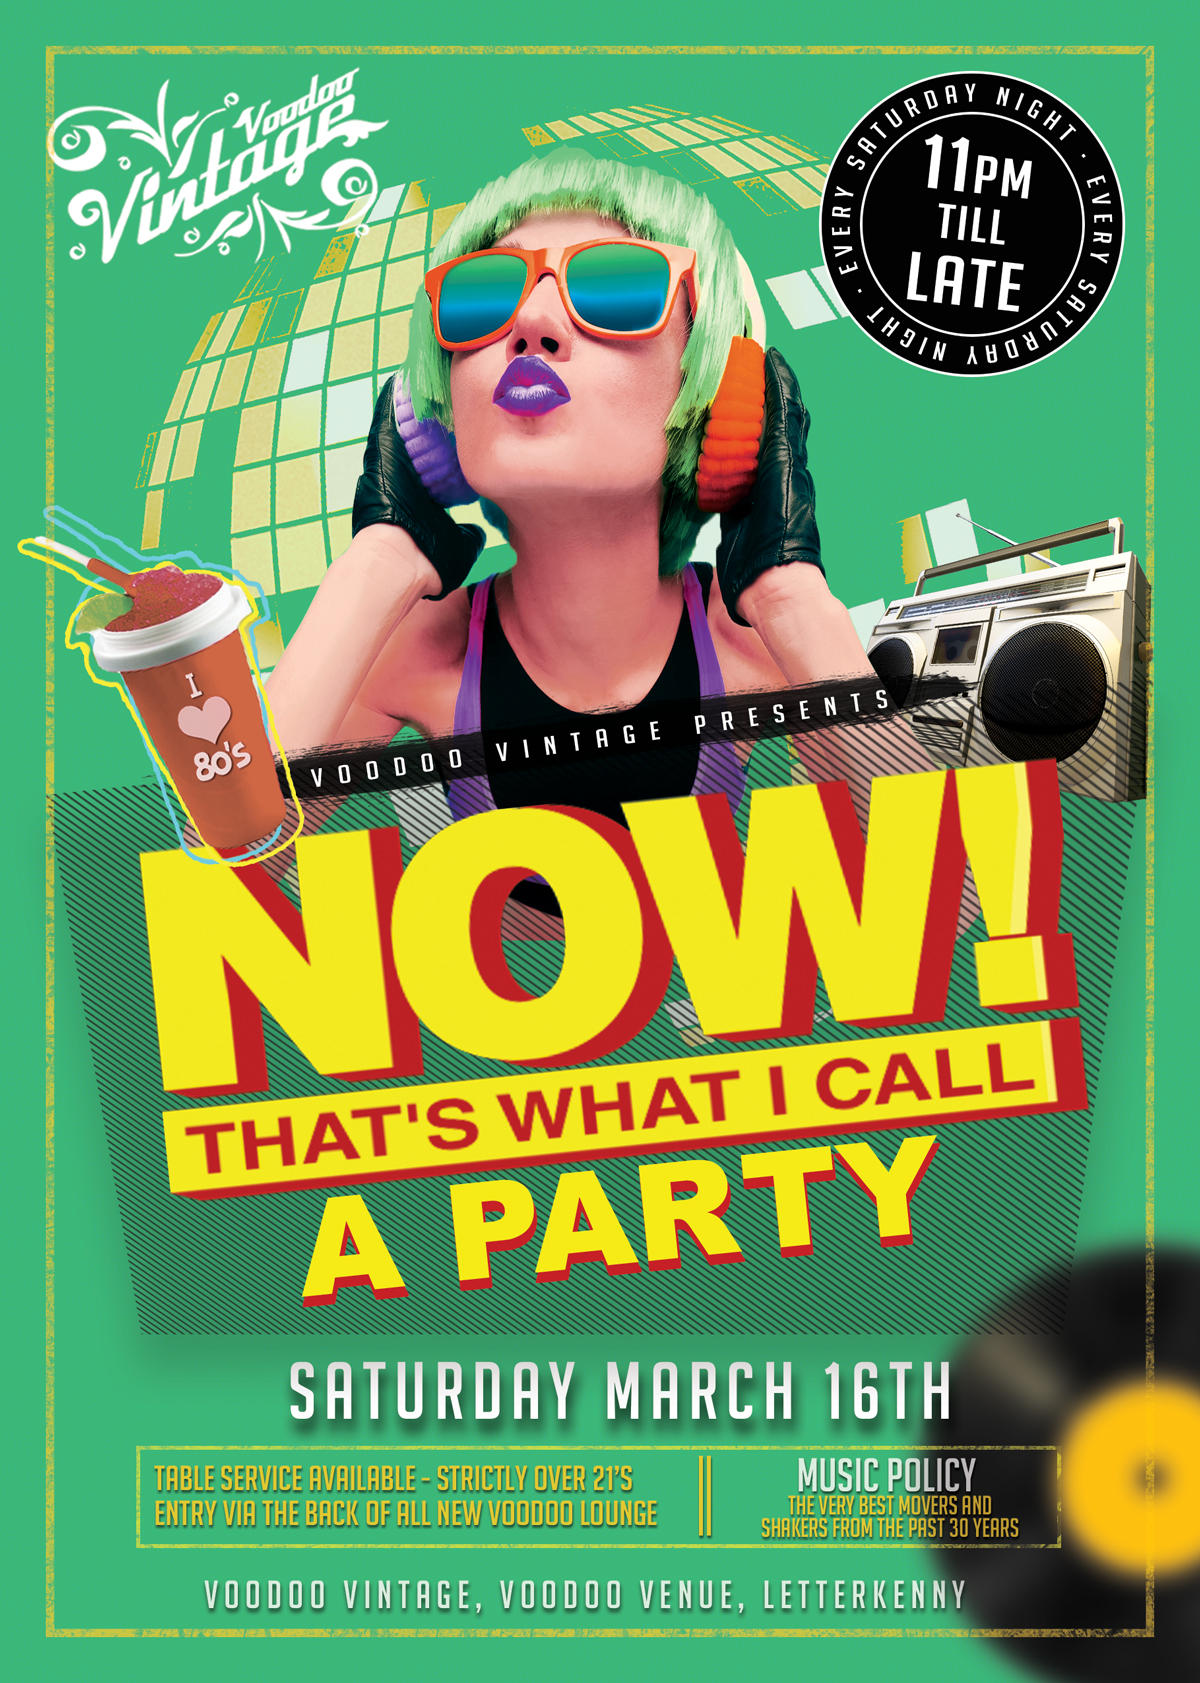 voodoo-vintage---now-thats-what-i-call-a-party-sat-march-16-2019.jpg